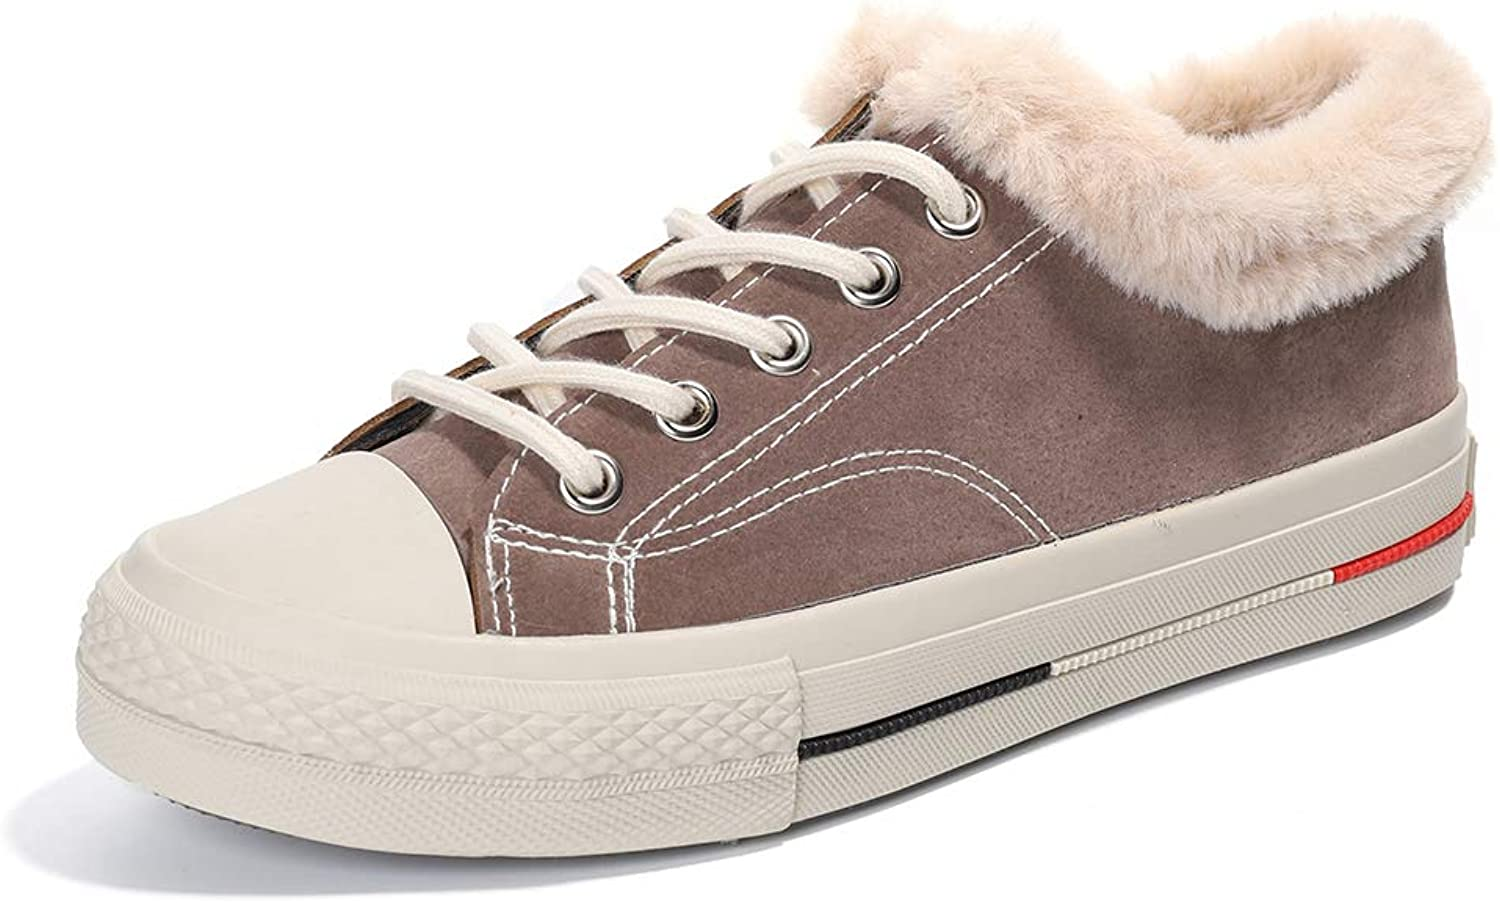 Women's Winter Sports shoes, Stylish and Comfortable Warm Plush Flat shoes